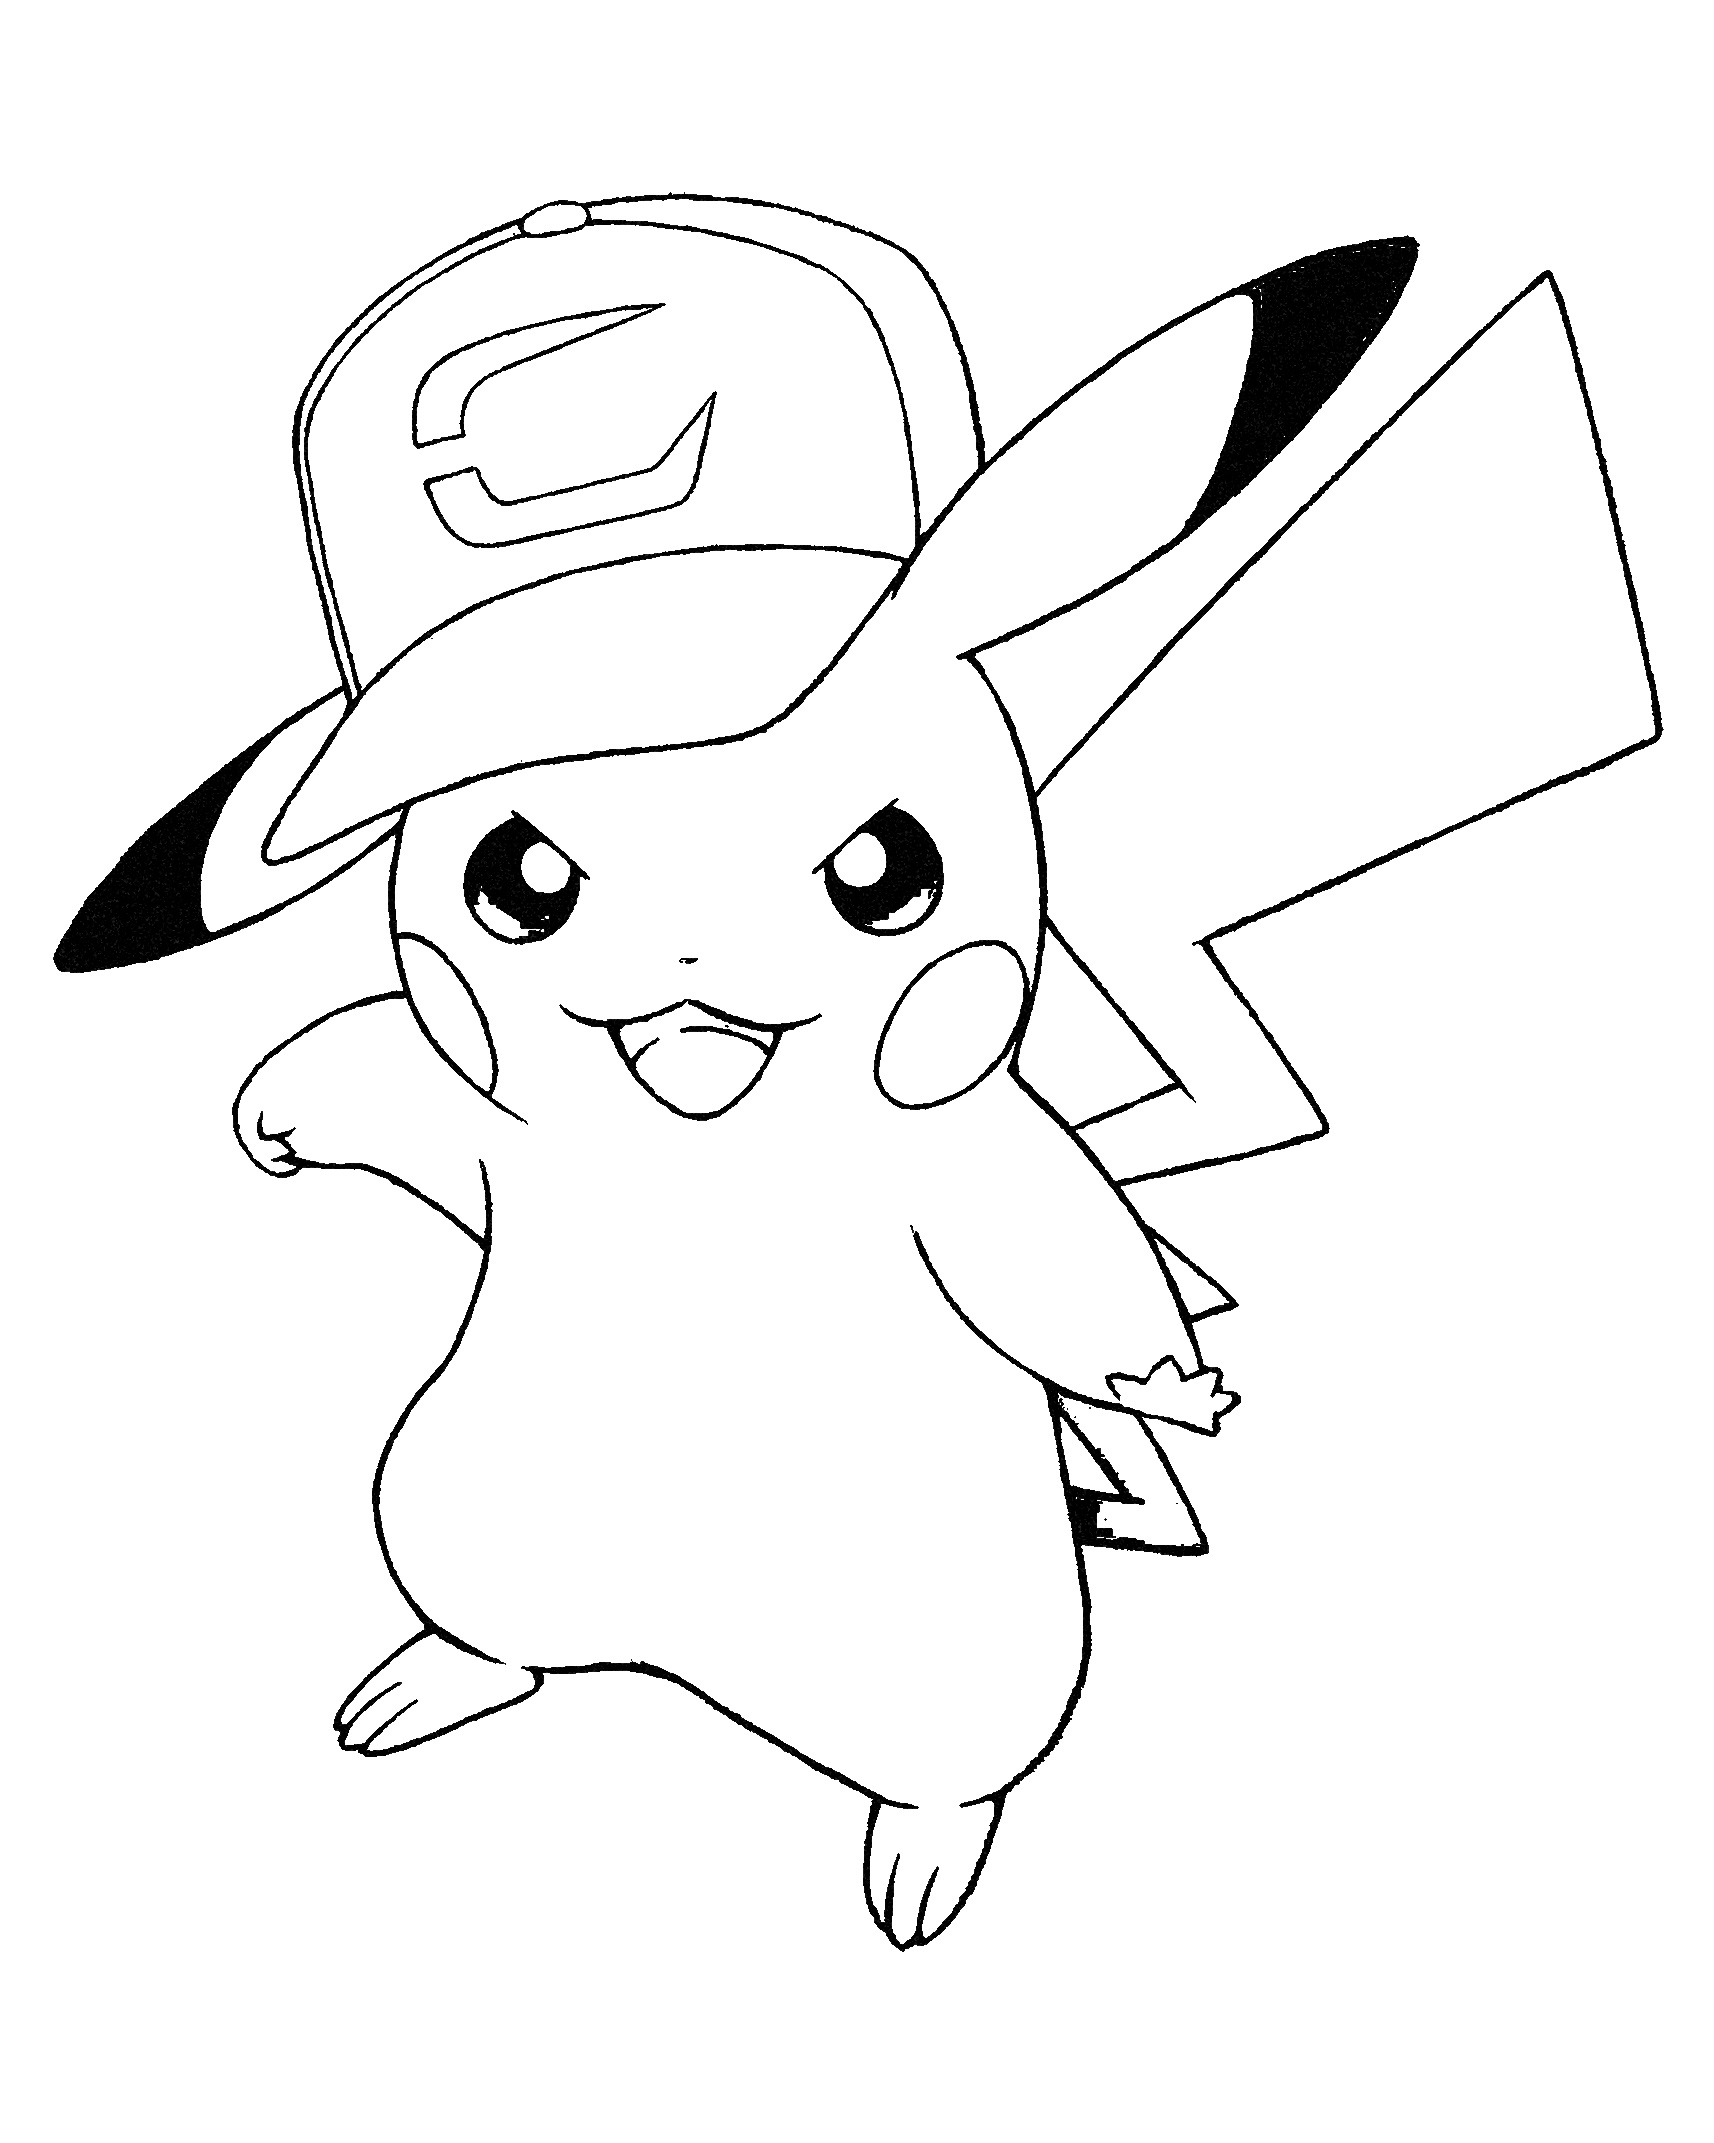 pikachu coloring pages best free pikachu coloring pages image free coloring pikachu coloring pages